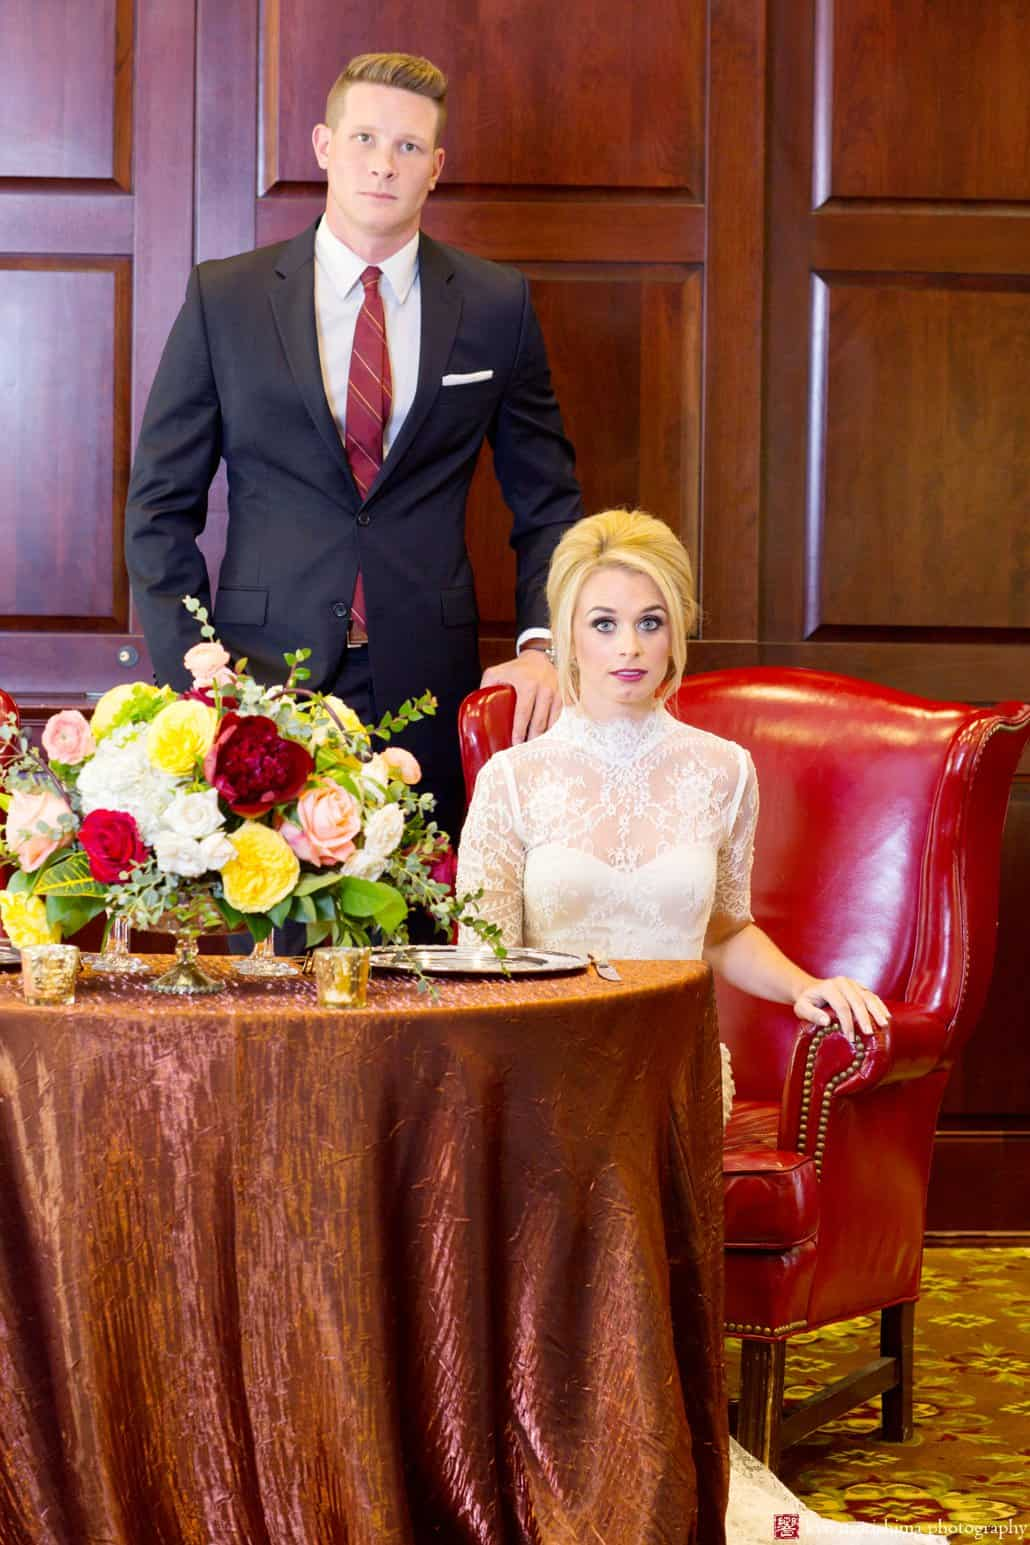 """Maroon, gold and white flower centerpiece in the Nassau Inn ballroom, with bride wearing Bridgette wedding gown from BHLDN, during Nassau Inn """"Madmen"""" photo shoot photographed by Kyo Morishima"""